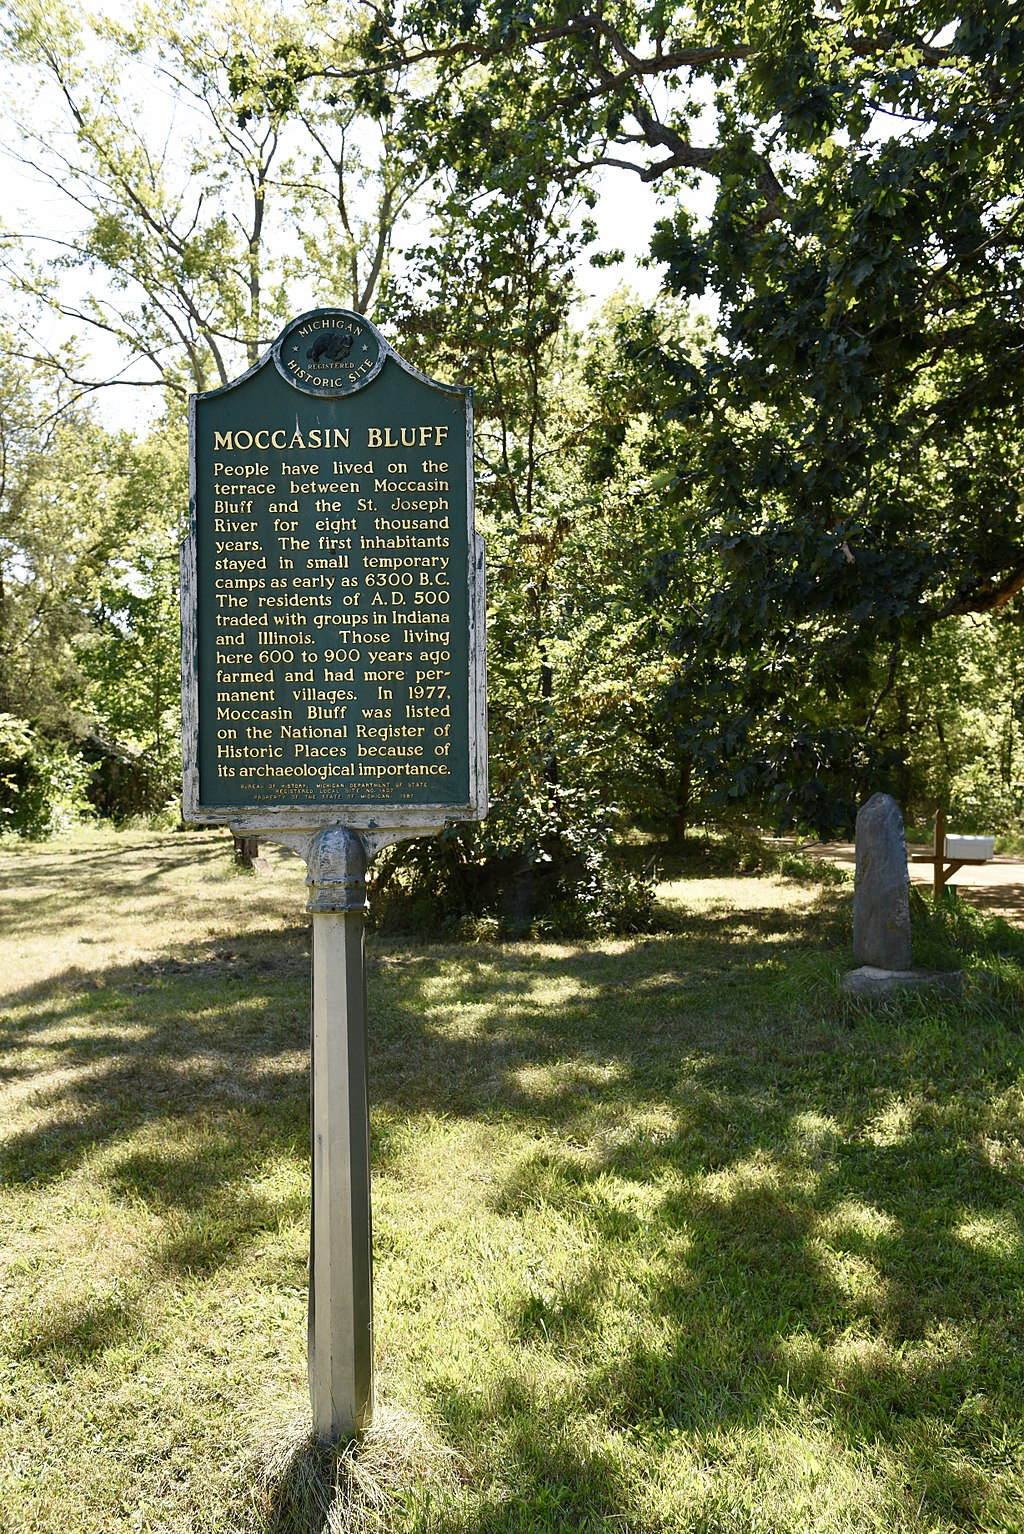 This historical marker indicates the location of the site. Please note that the map location is general and not the exact spot of the marker.